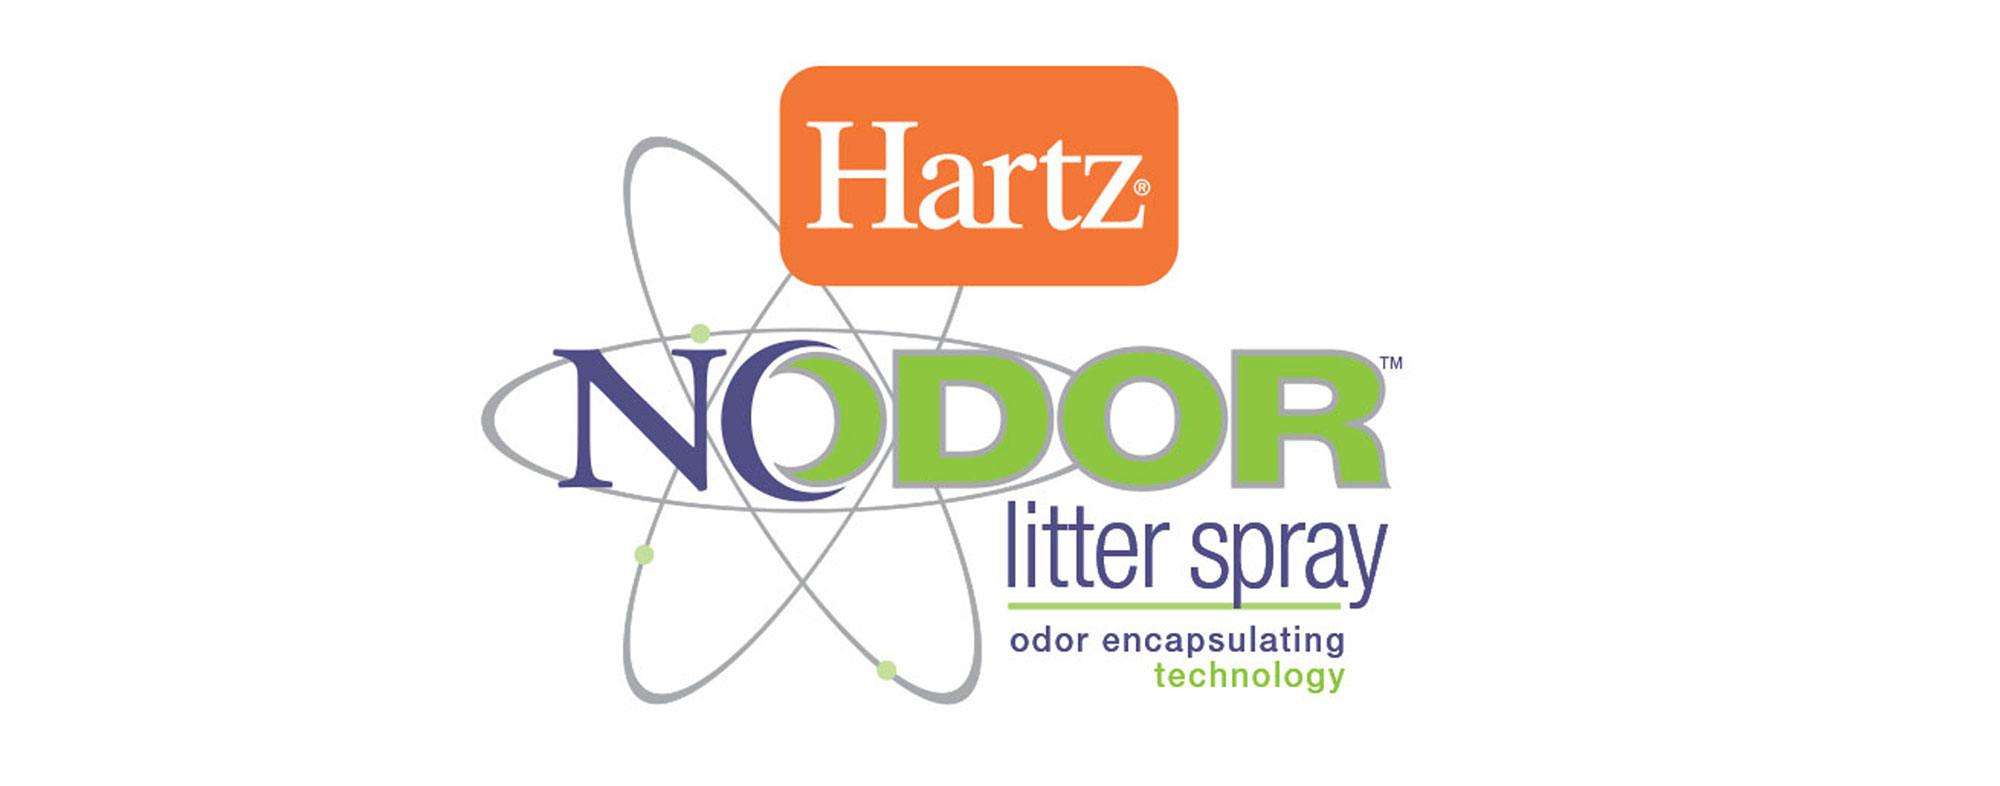 Your cat's litter box doesn't have to stink with Hartz® Nodor™